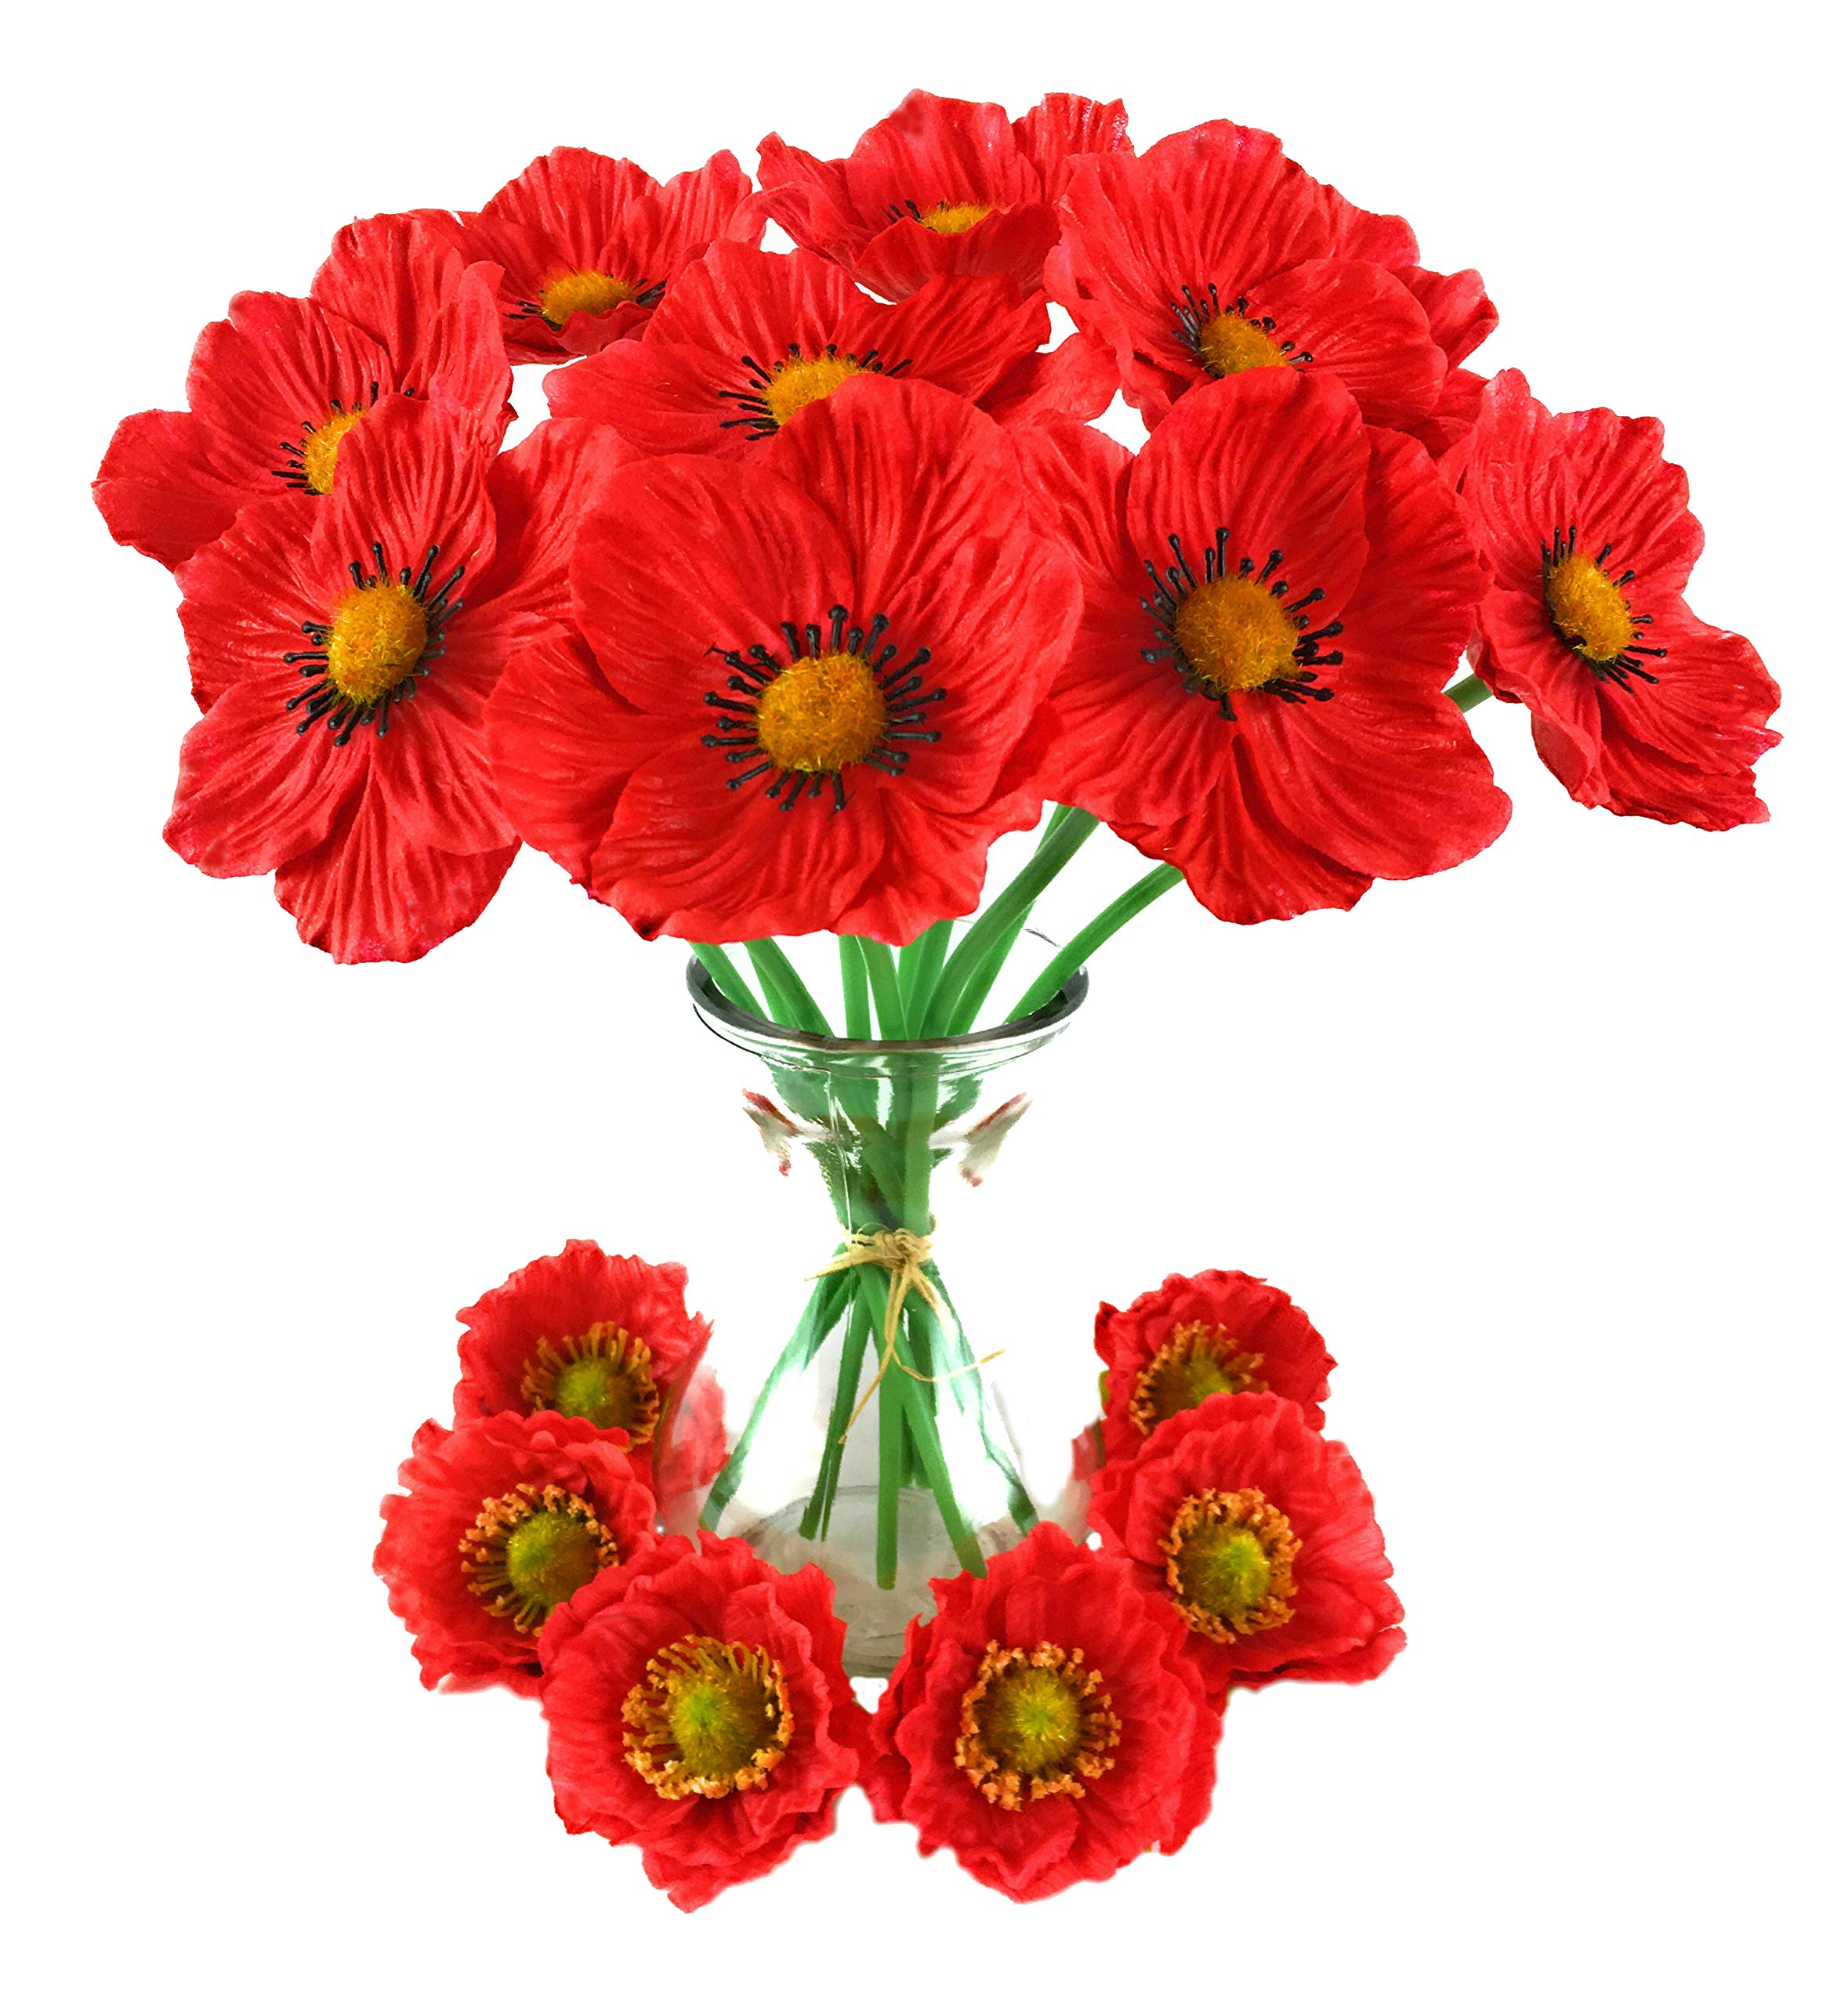 silk flower arrangements artificial flowers long stem poppies silk poppy flower heads 16 piece set for home vase fake plants kitchen decorations weddings crafts bouquets table settings special events hair accessories